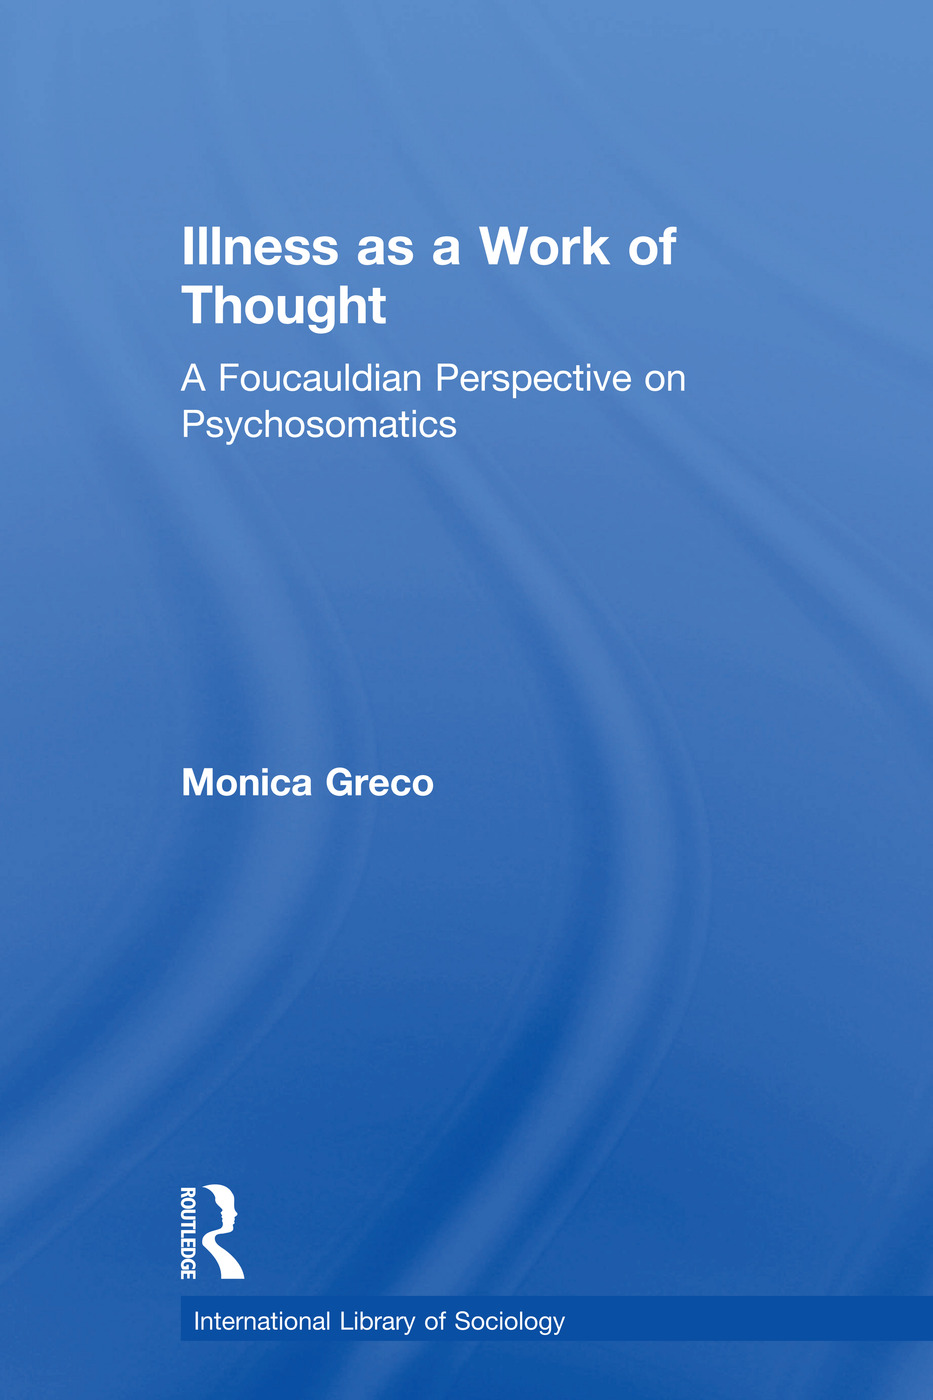 Illness as a Work of Thought: A Foucauldian Perspective on Psychosomatics book cover